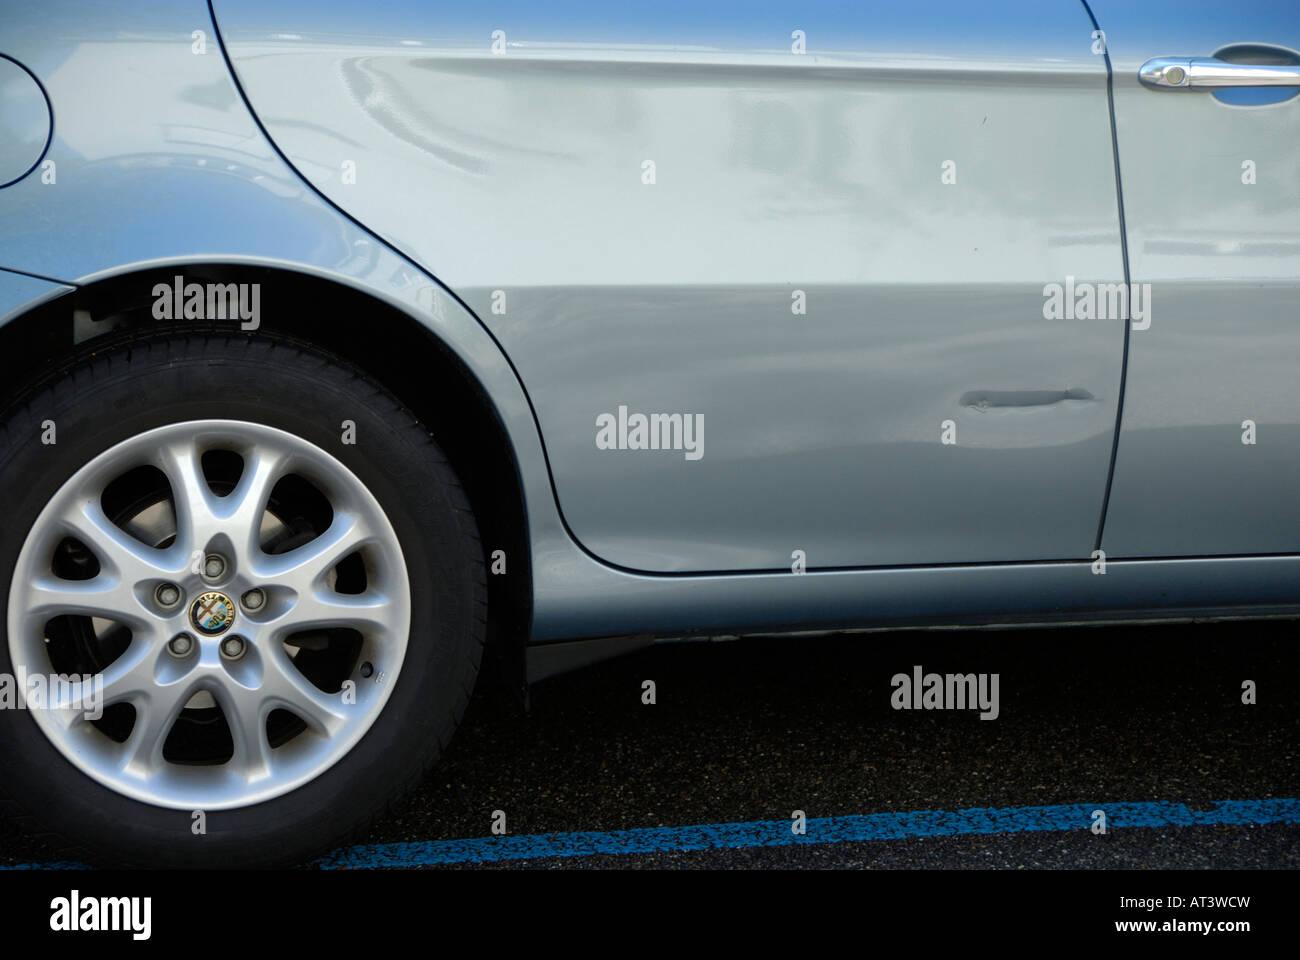 A scar on the door of a new car. - Stock Image